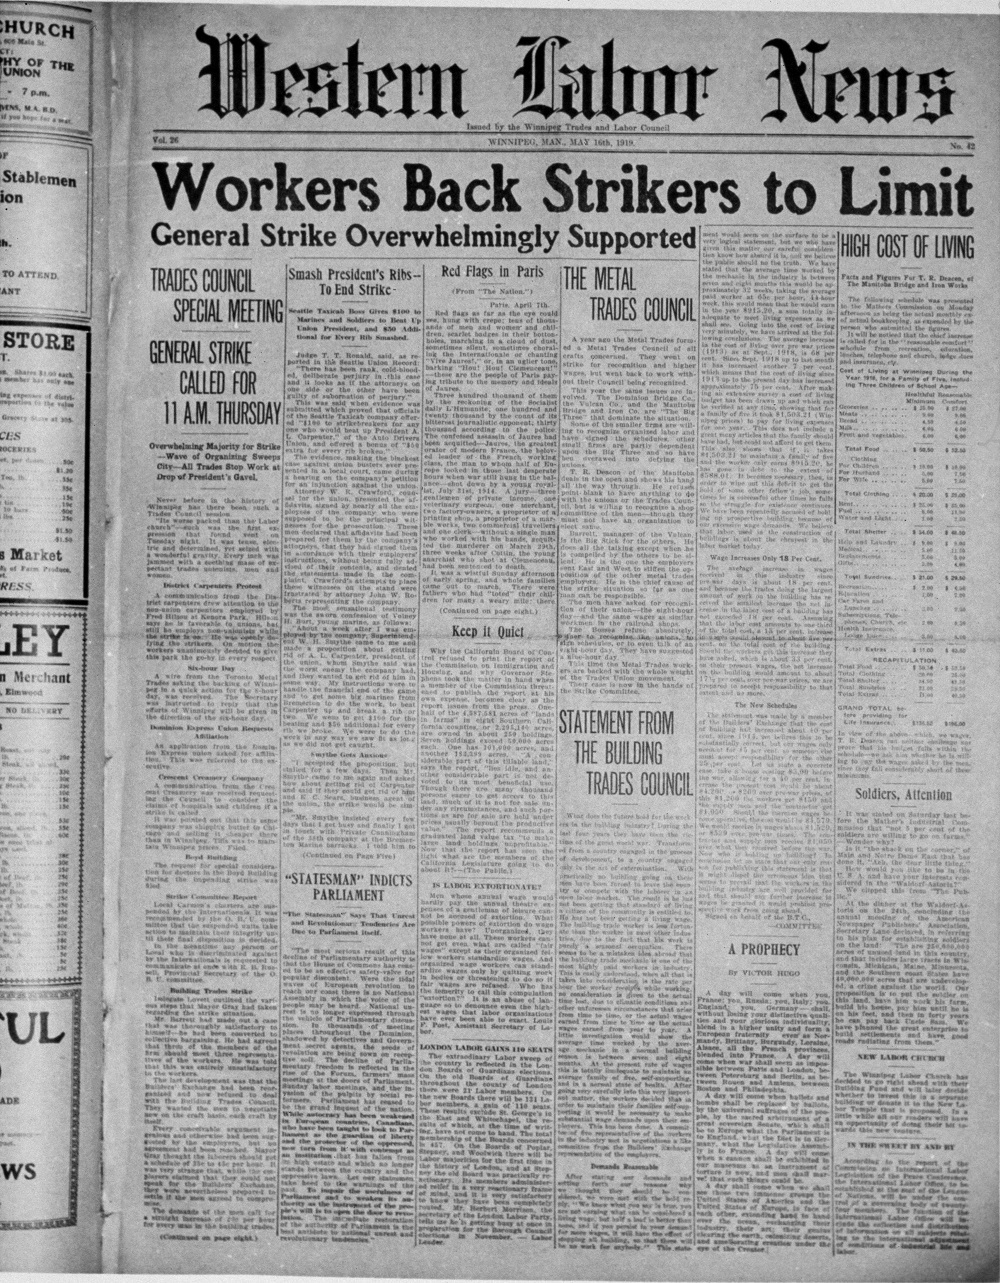 The front page of the Western Labour News on May 16, 1919, trumpets the overwhelming support for a general strike, while another article talks about the high cost of living. (Archives of Manitoba)